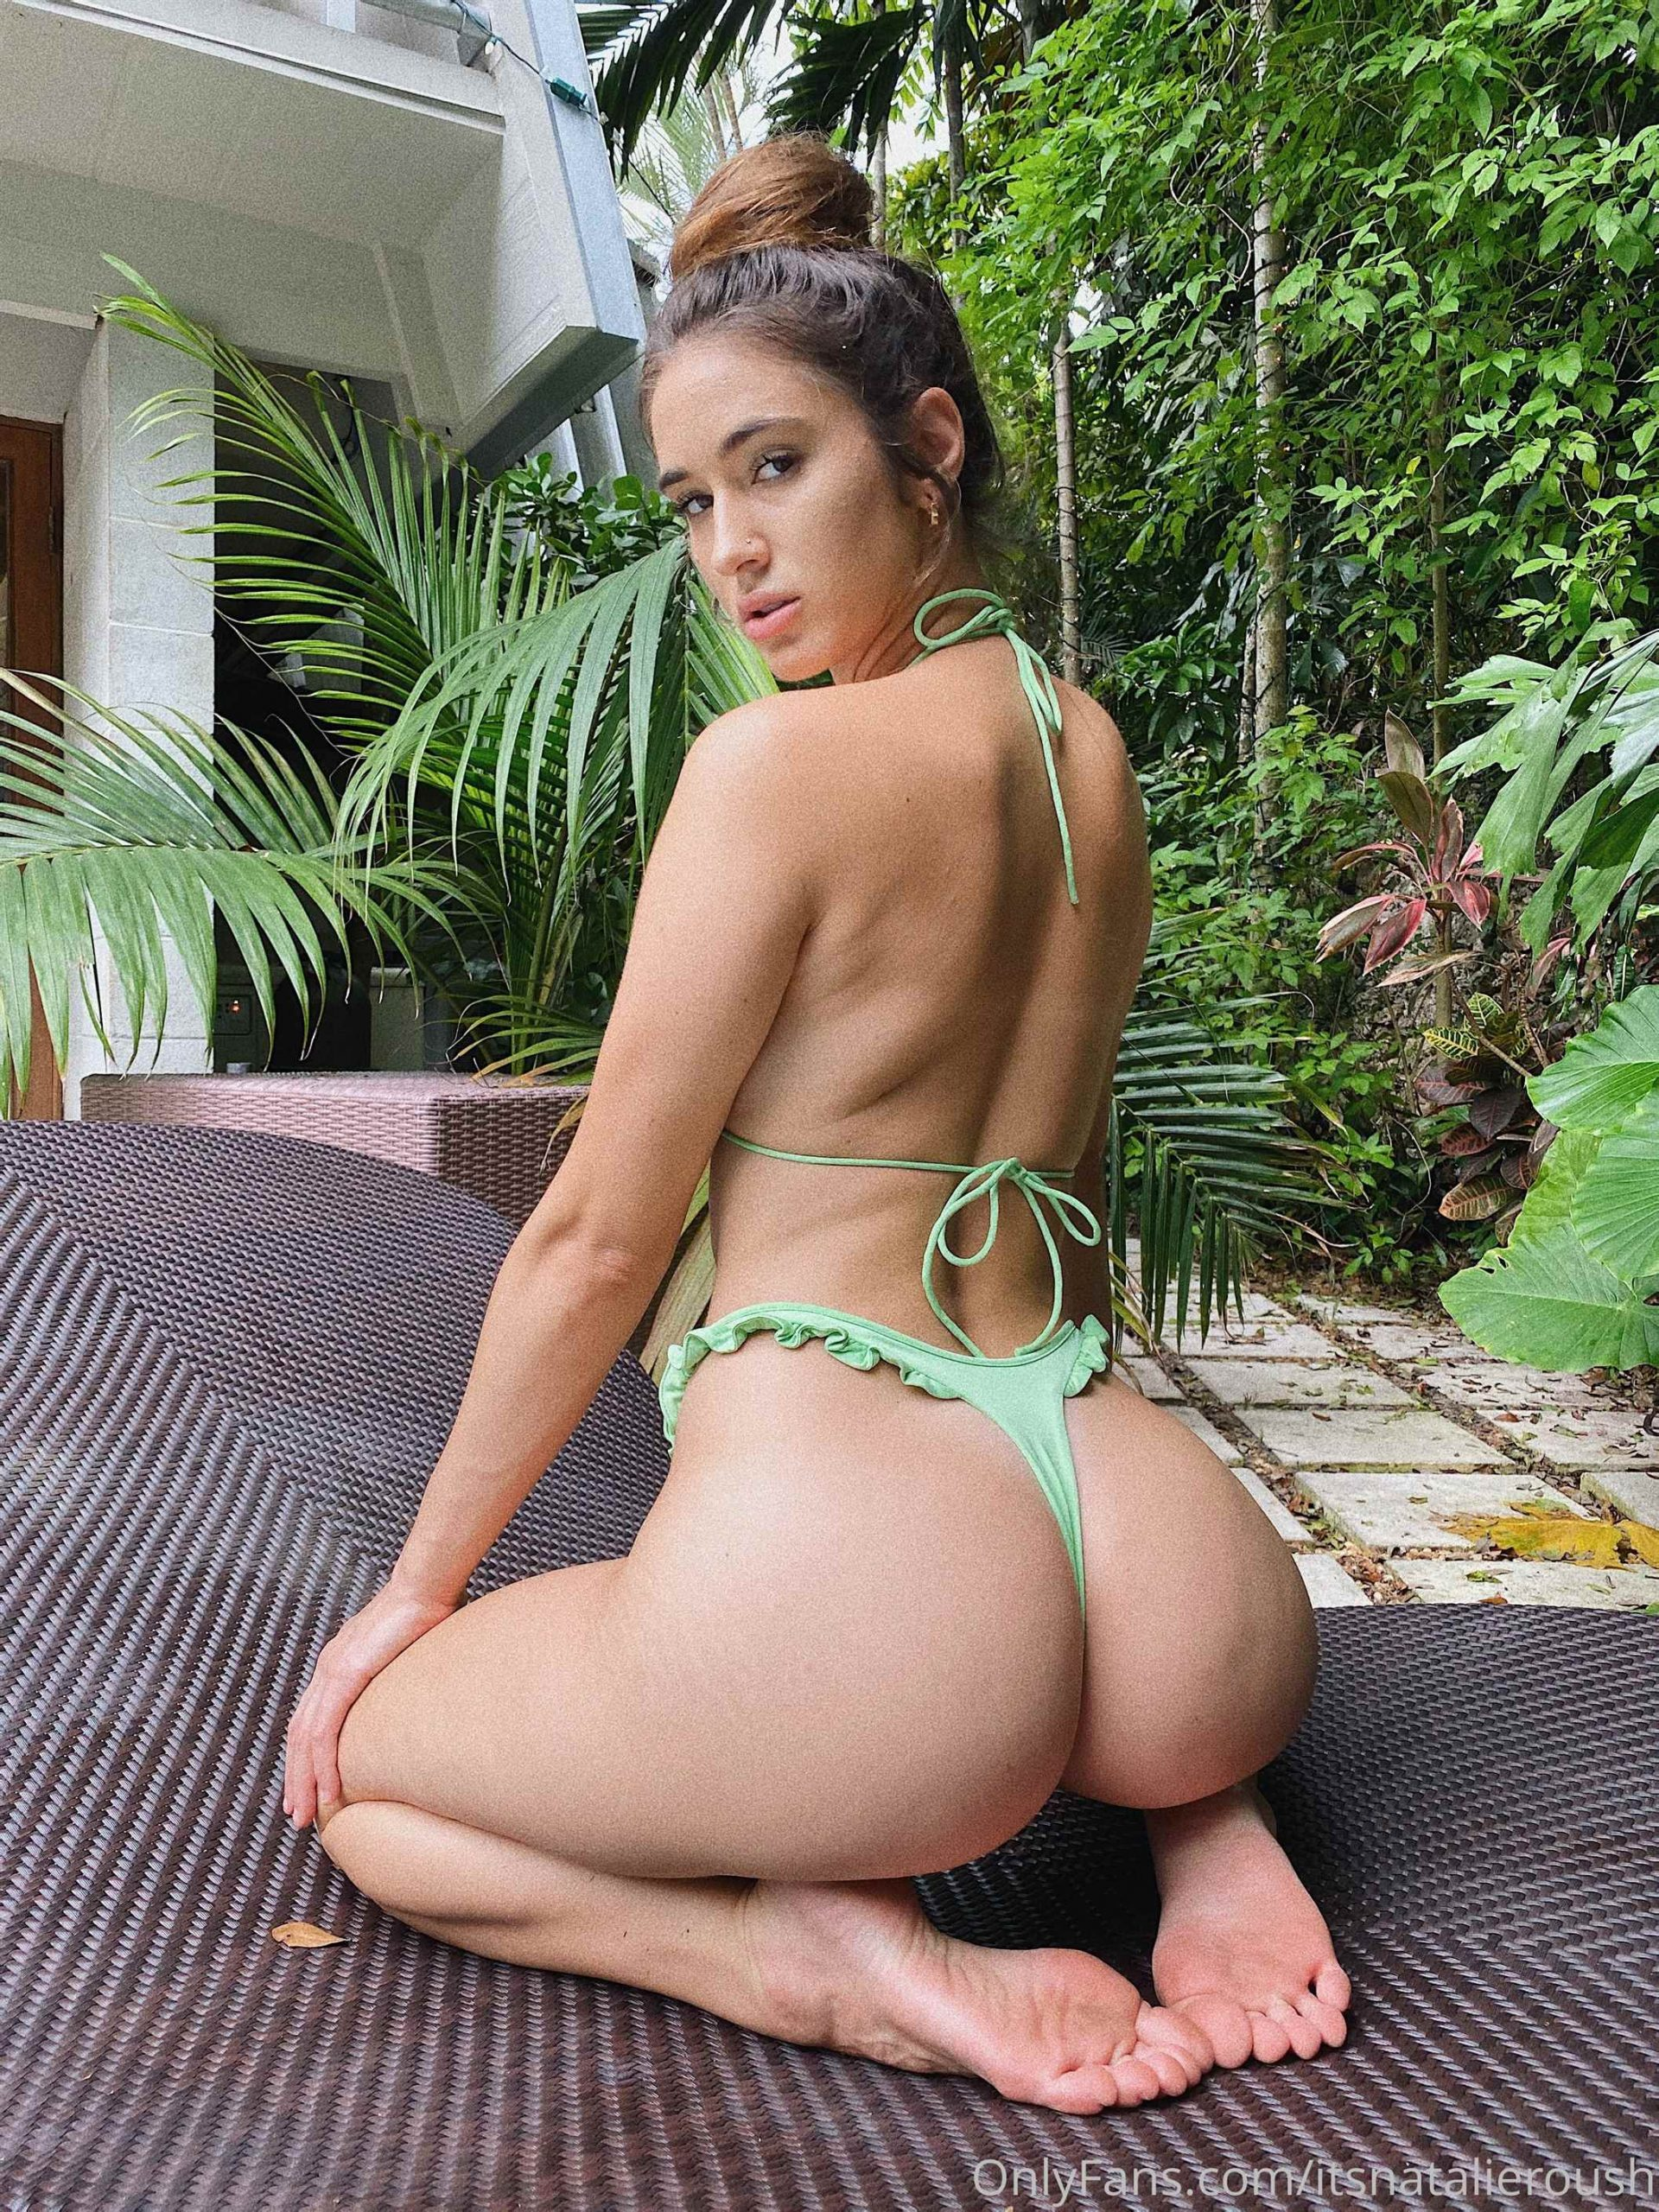 Natalie Roush Nude Leaked Onlyfans Photos 0042